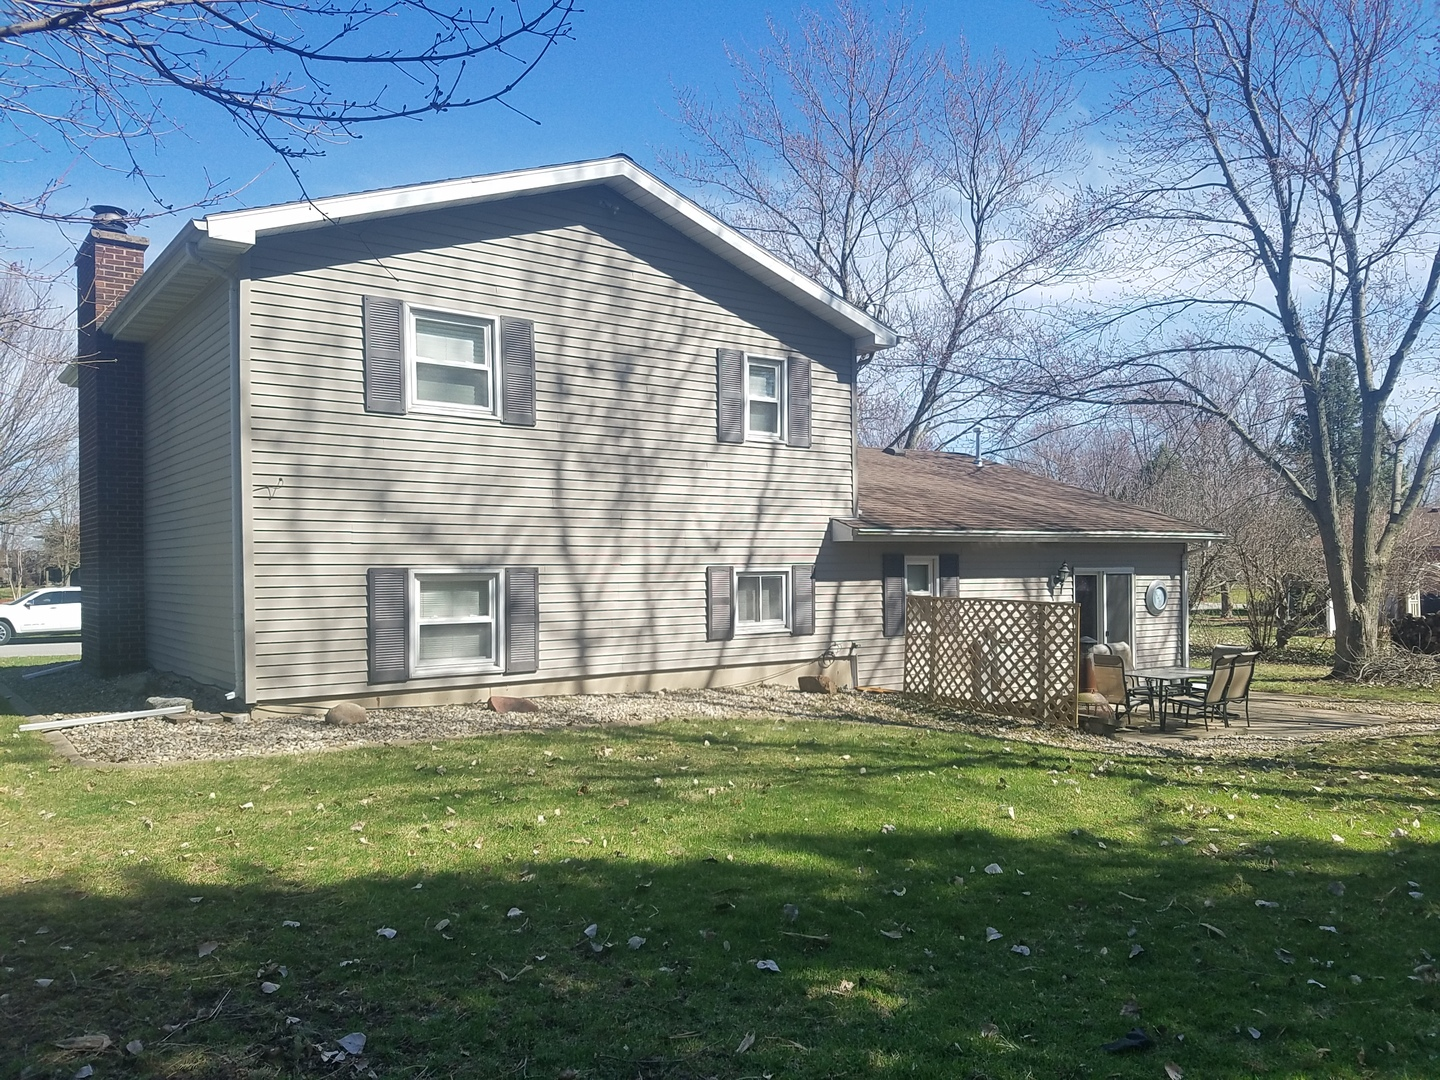 203 North Via Tomacelli, TOLUCA, Illinois, 61369